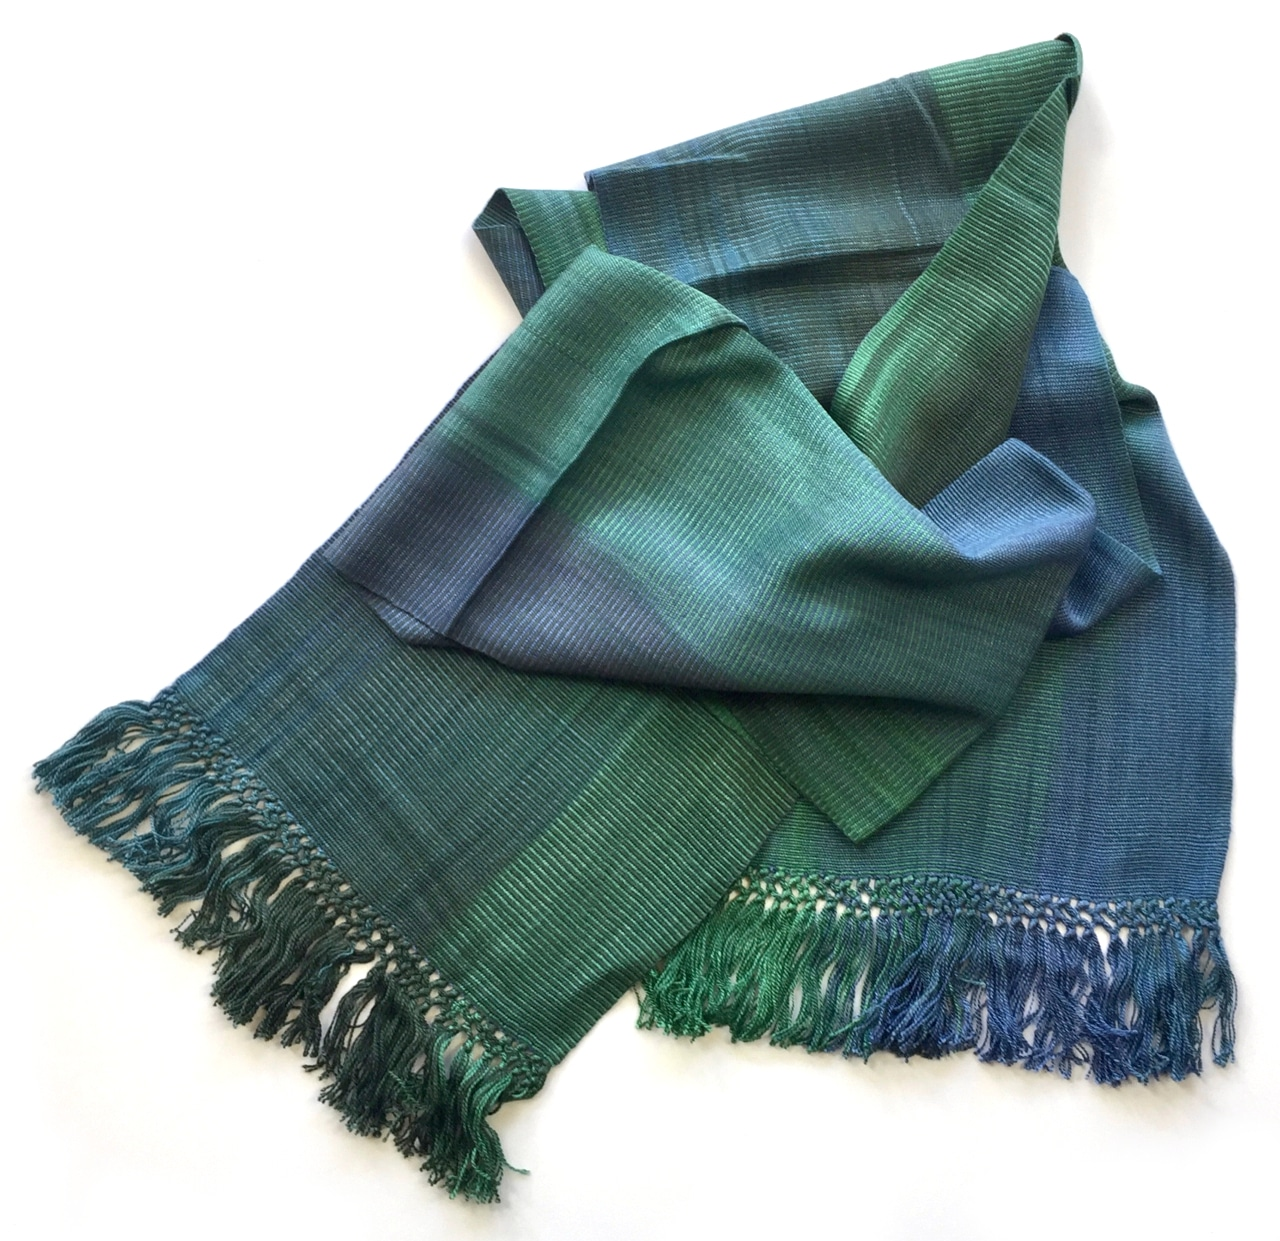 Emerald and Sapphire (Green and Blue) - Lightweight Bamboo Handwoven Scarf 8 x 68